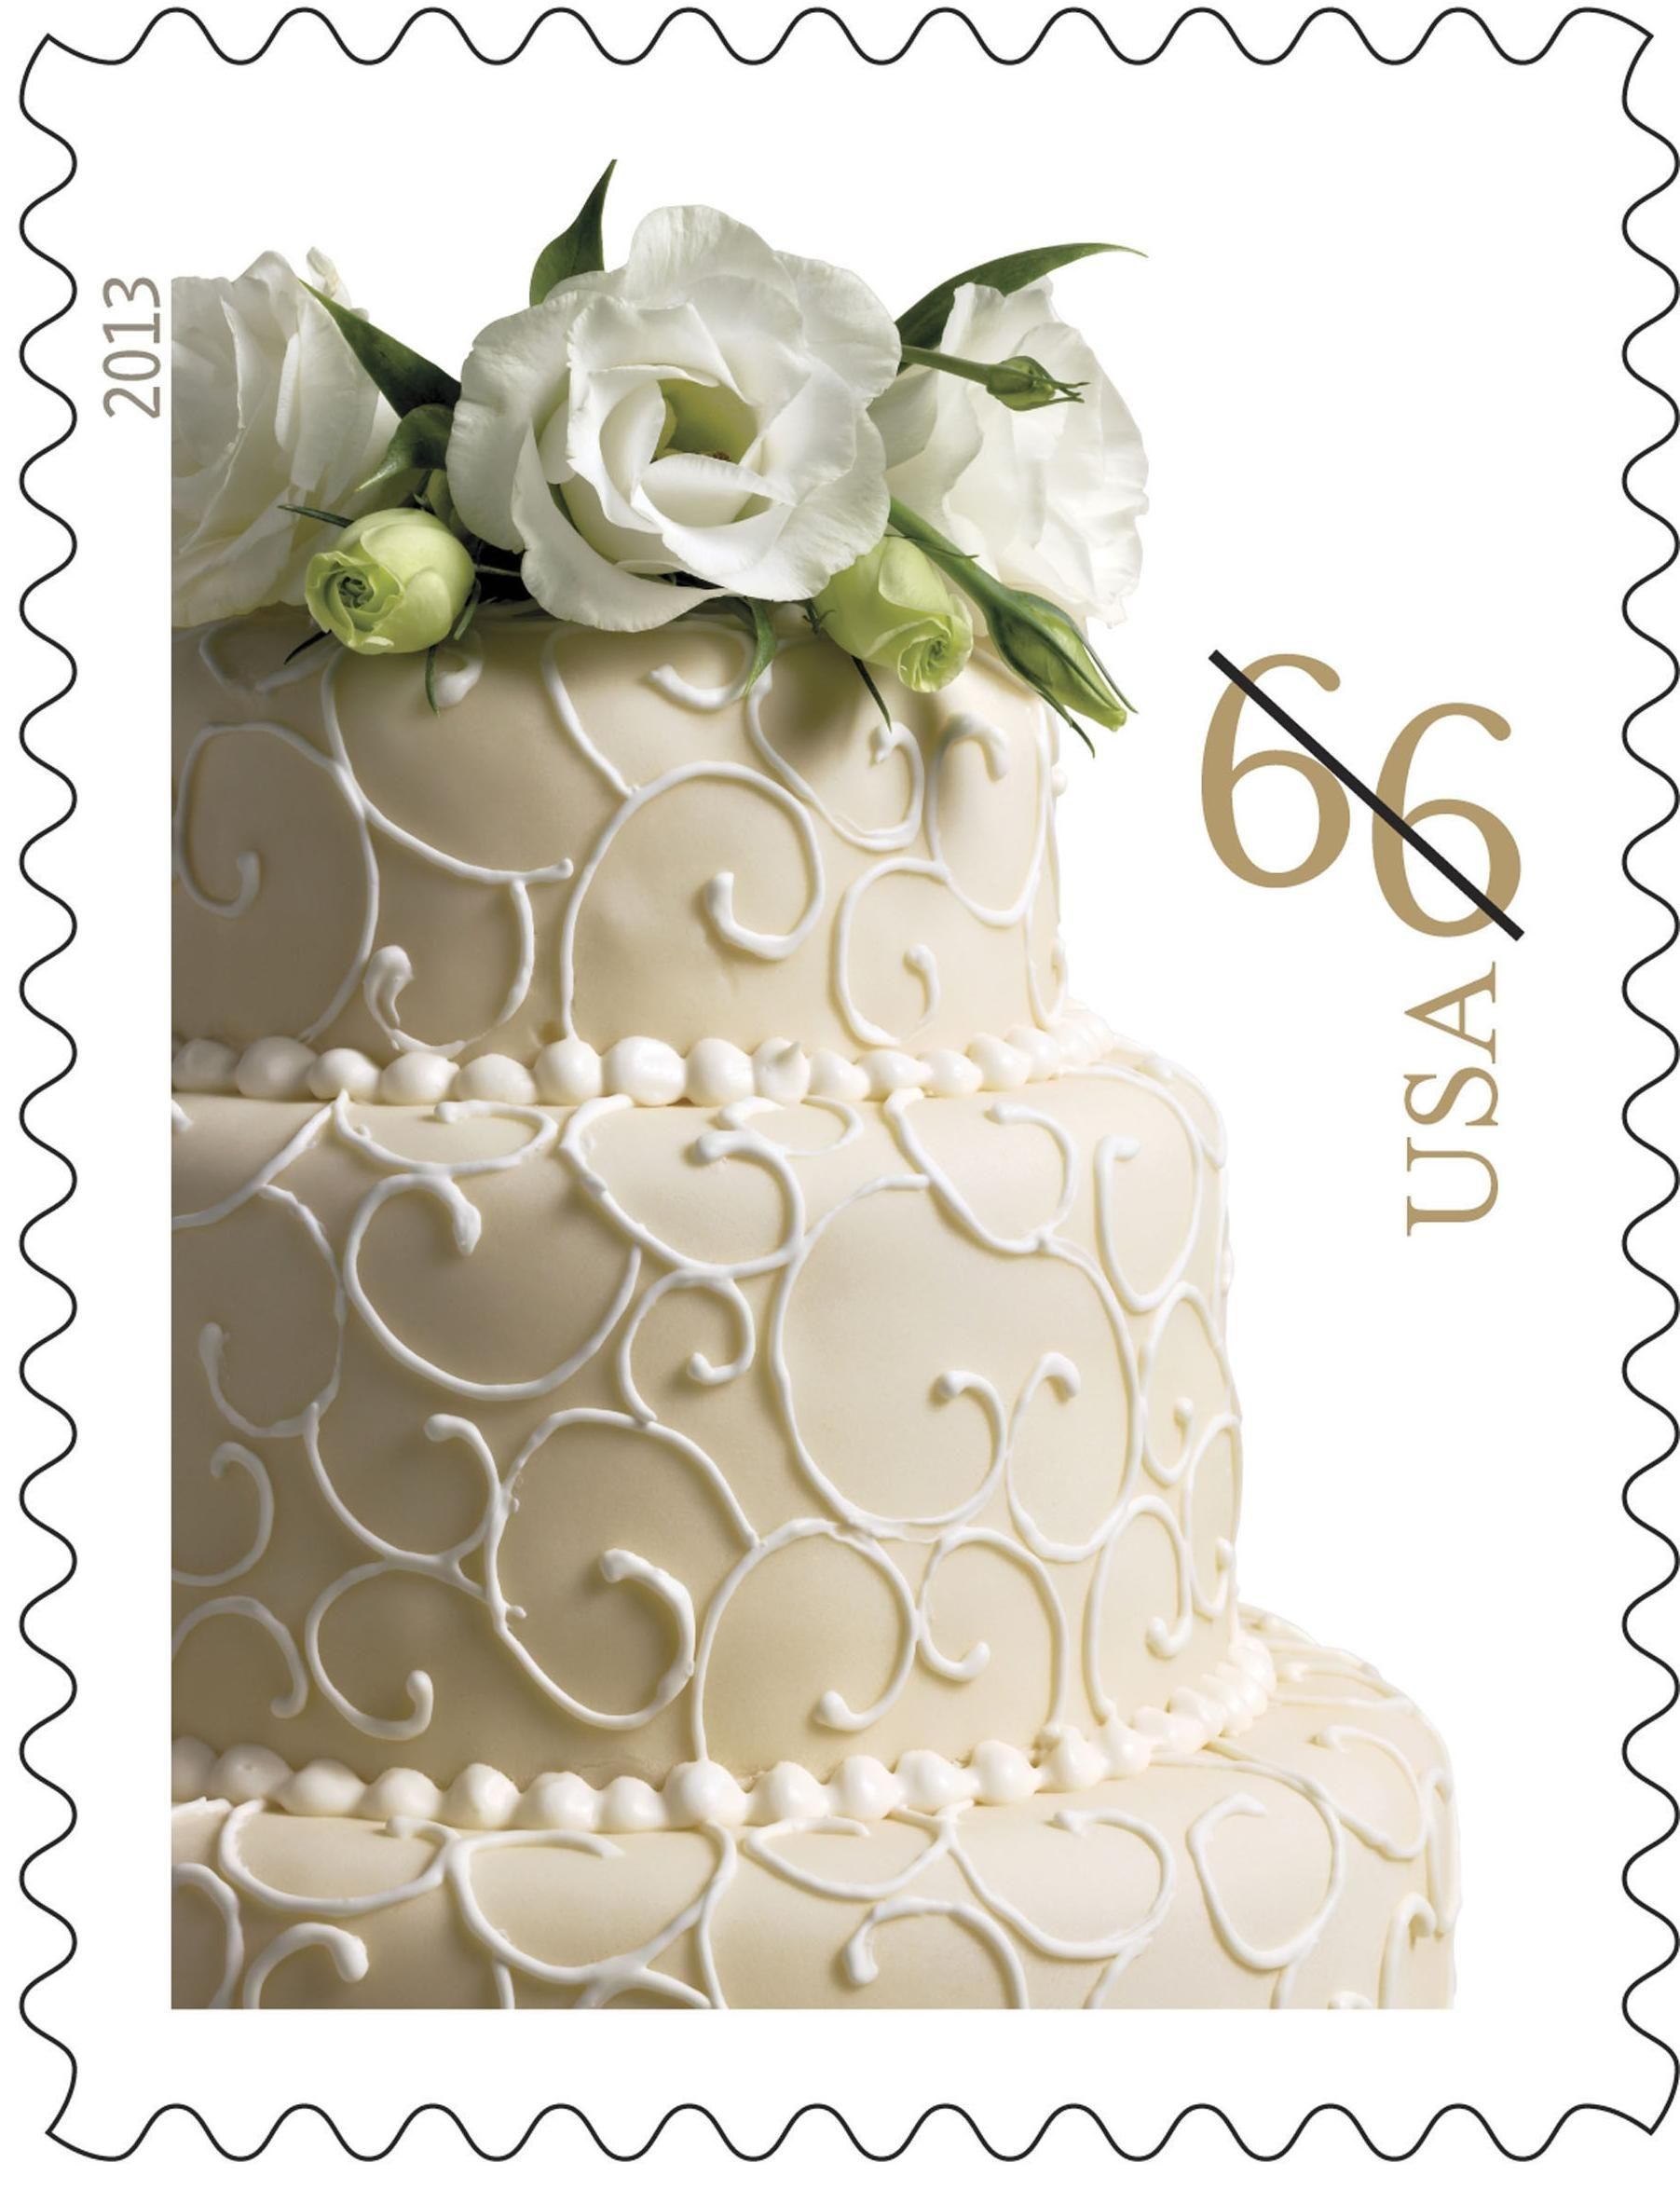 Usps Reissues Wedding Cake Stamp Wedding Stamp Wedding Invitation Postage Wedding Postage